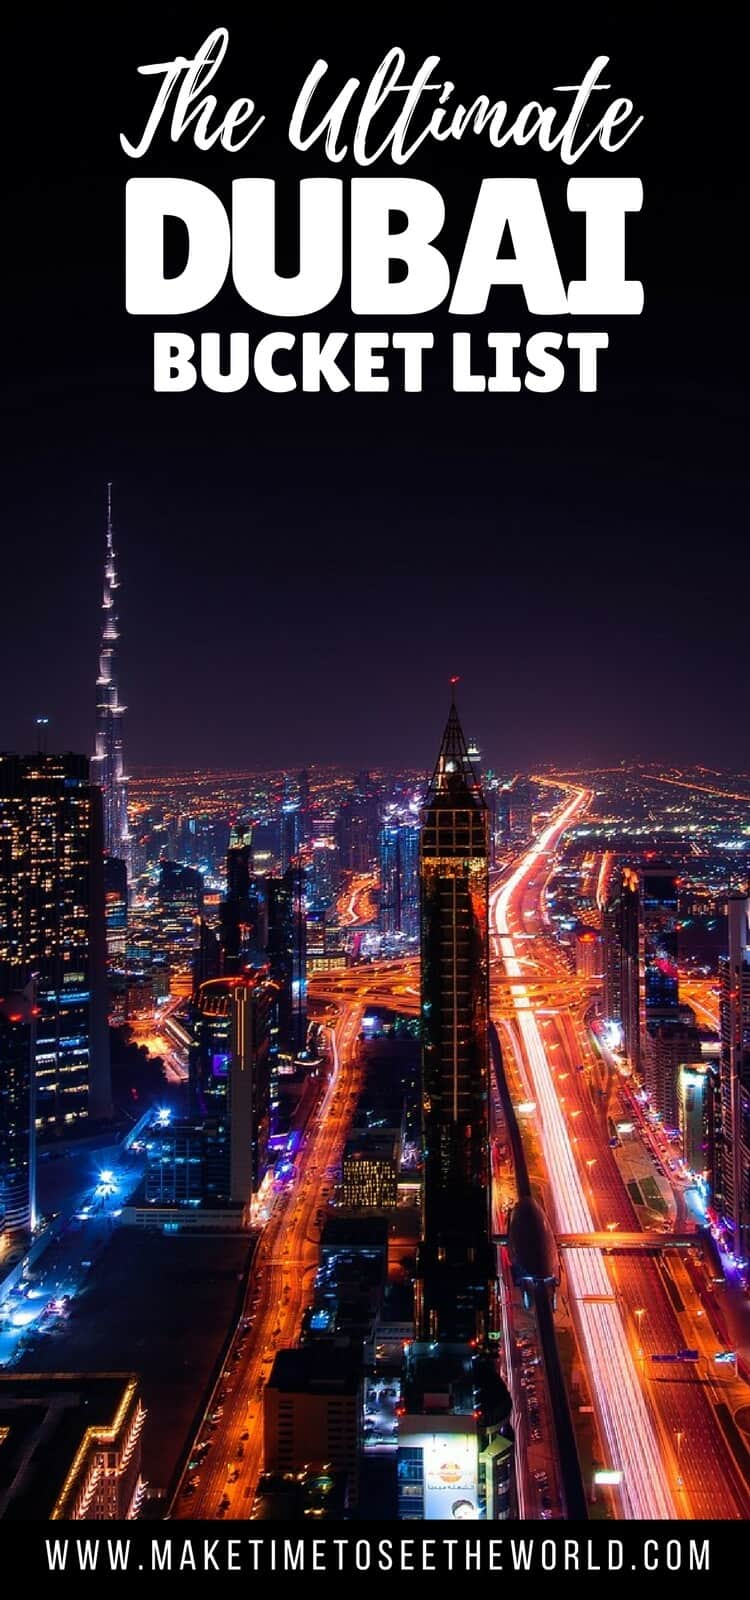 Pin image of Dubai at night from above with text overlay: The Ultimate Dubai Bucket List